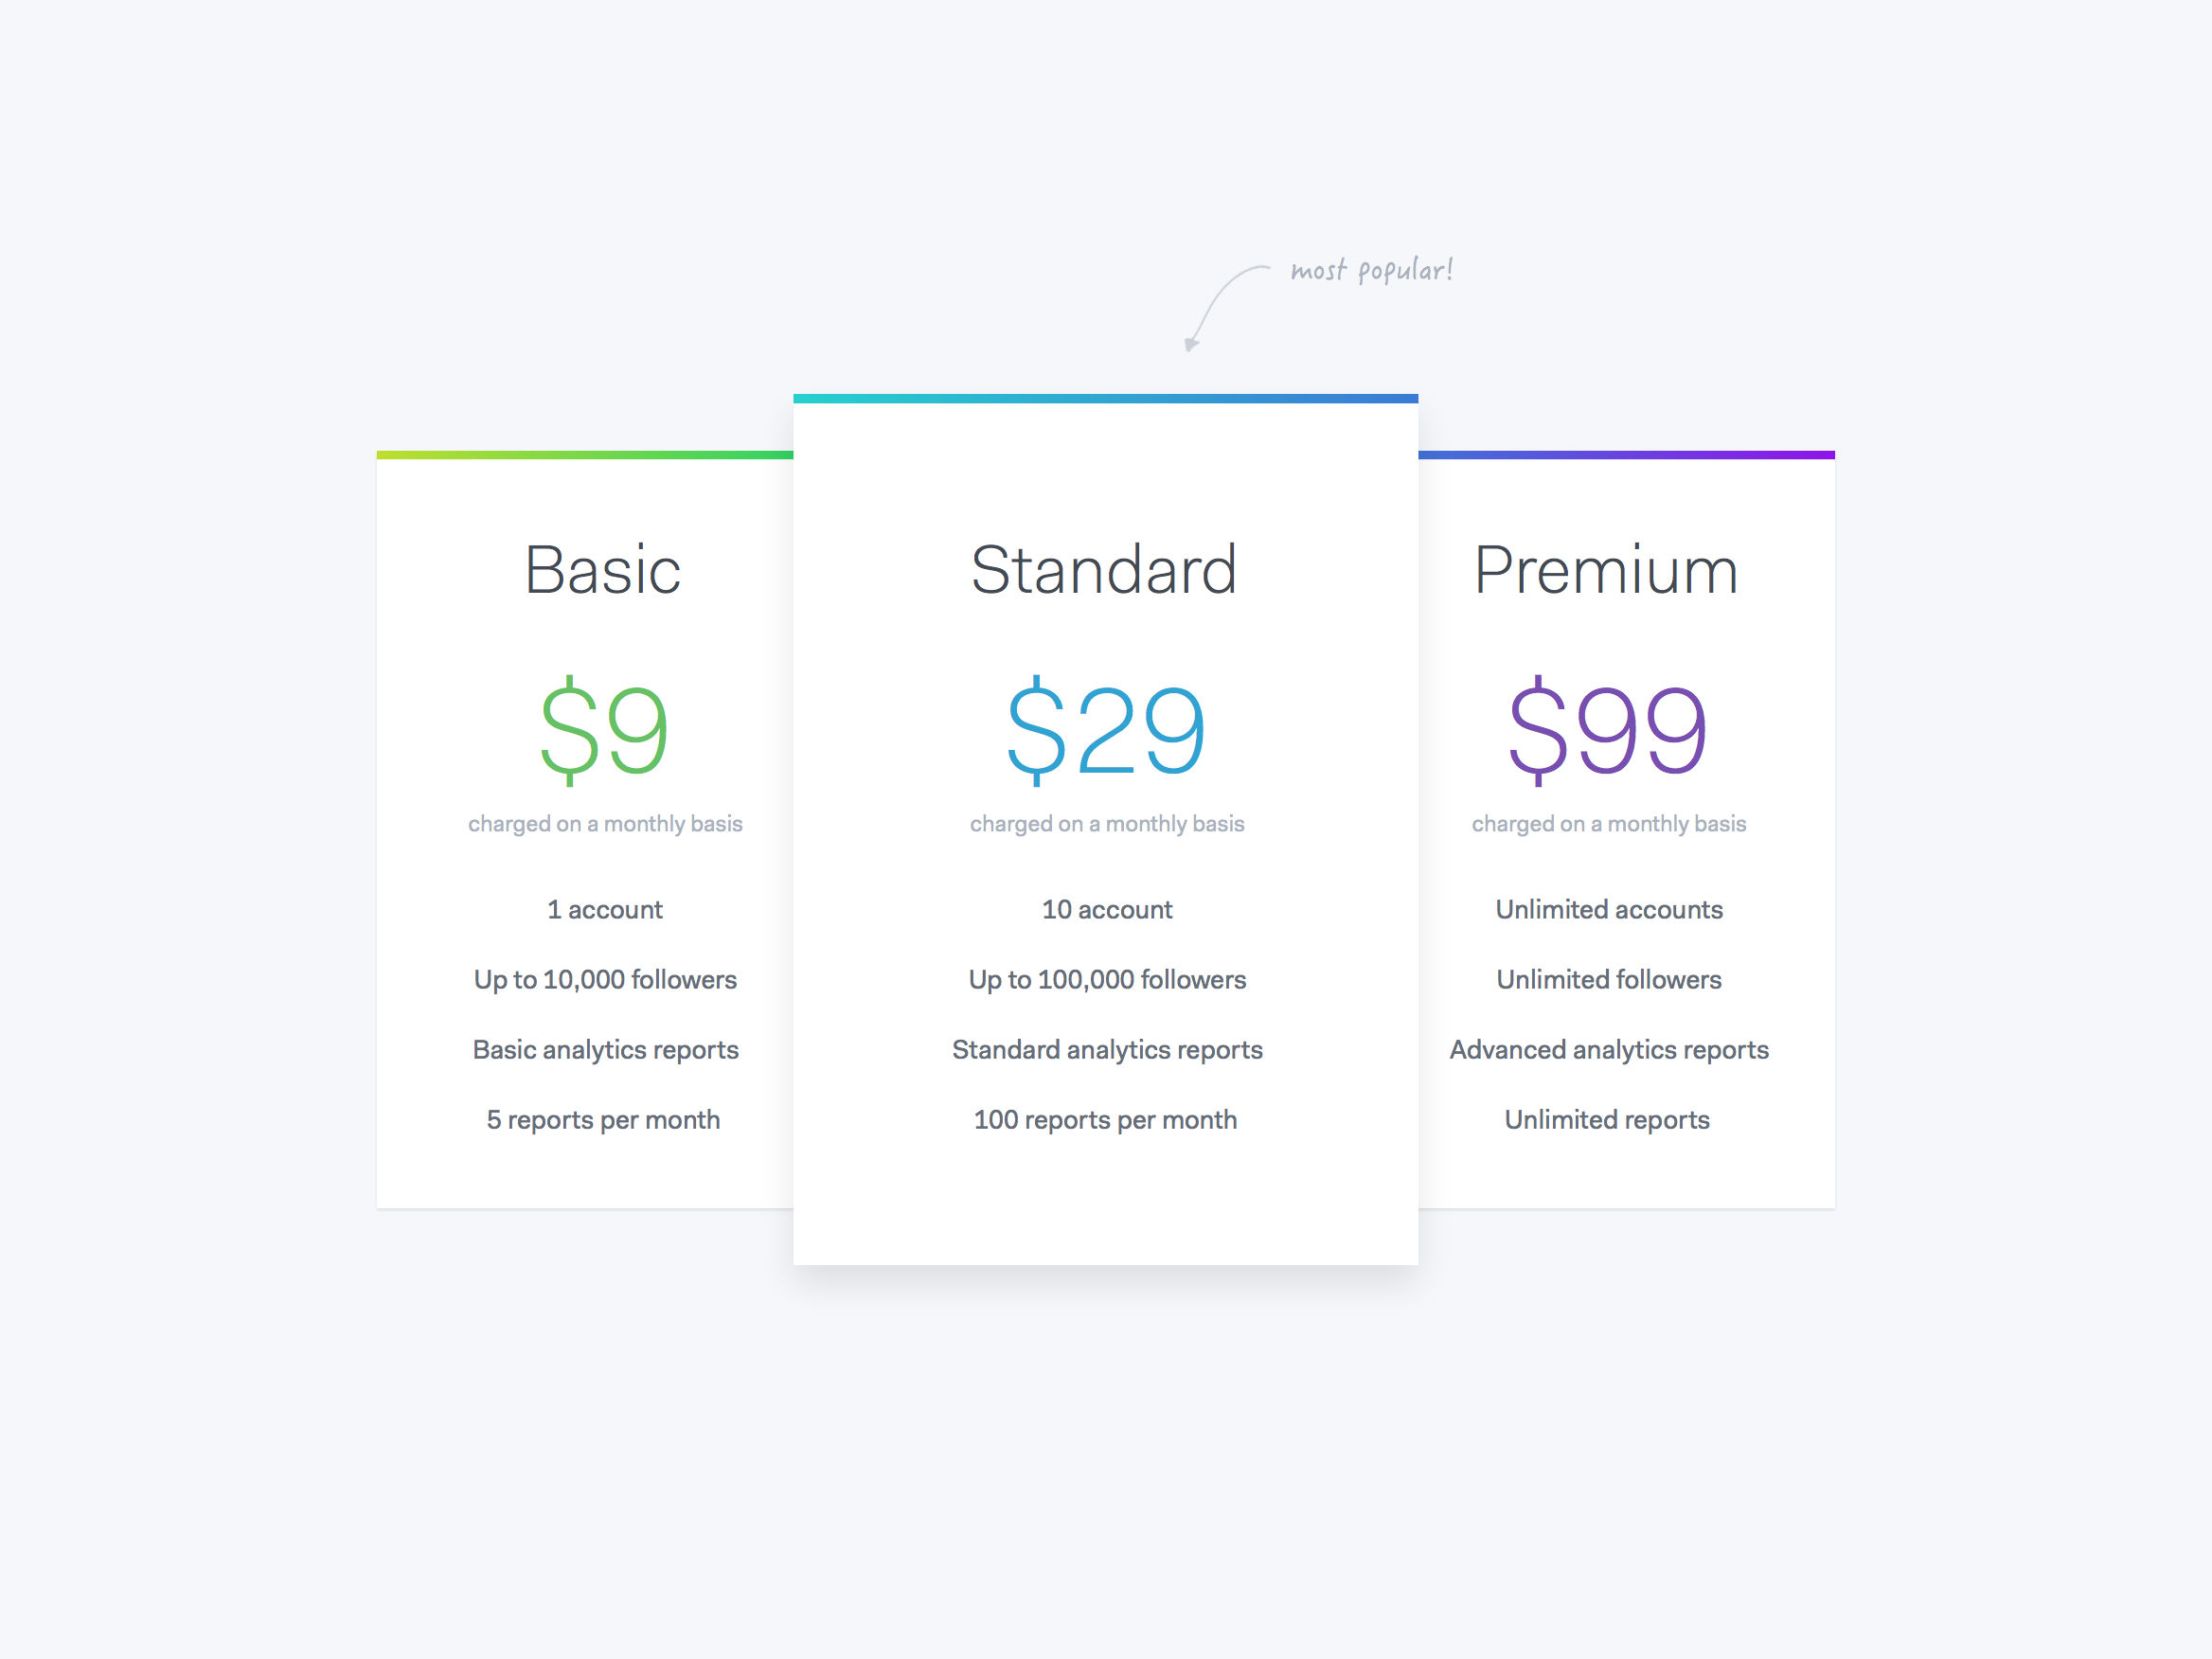 pricing_plans_pixels.png by Oliur How to plan, Price